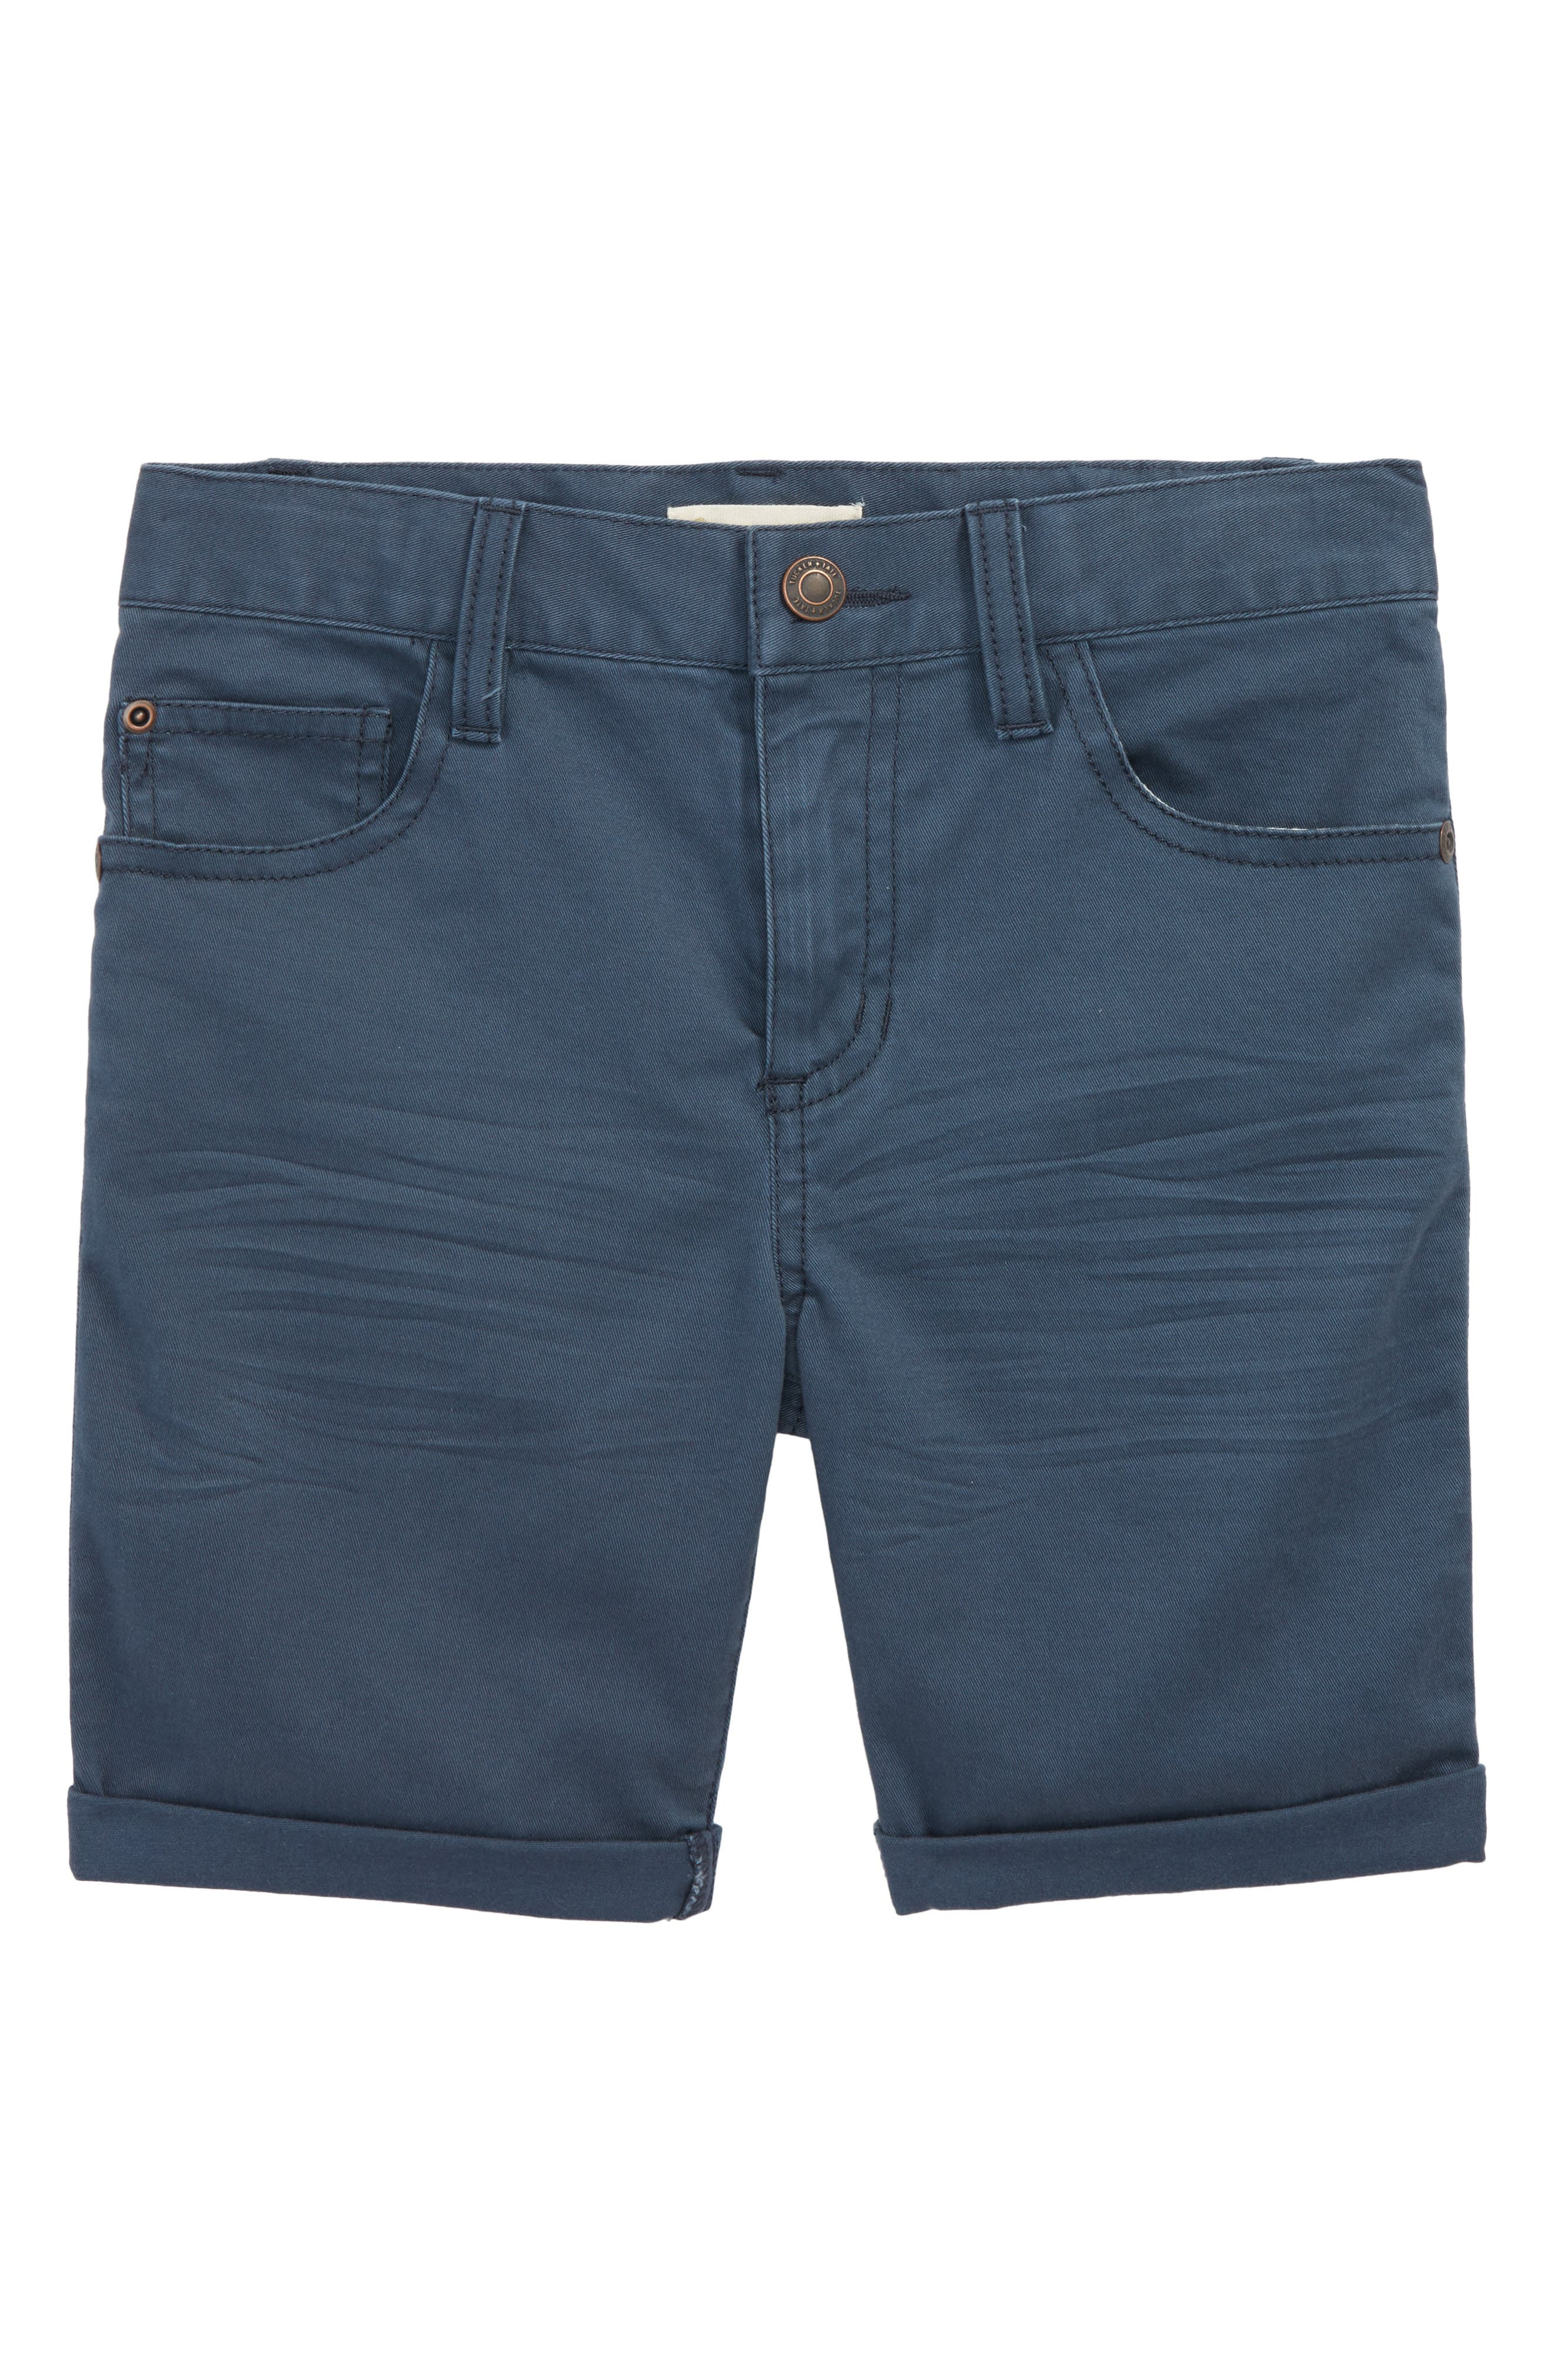 Stretch Twill Shorts,                             Main thumbnail 1, color,                             Navy Midnight